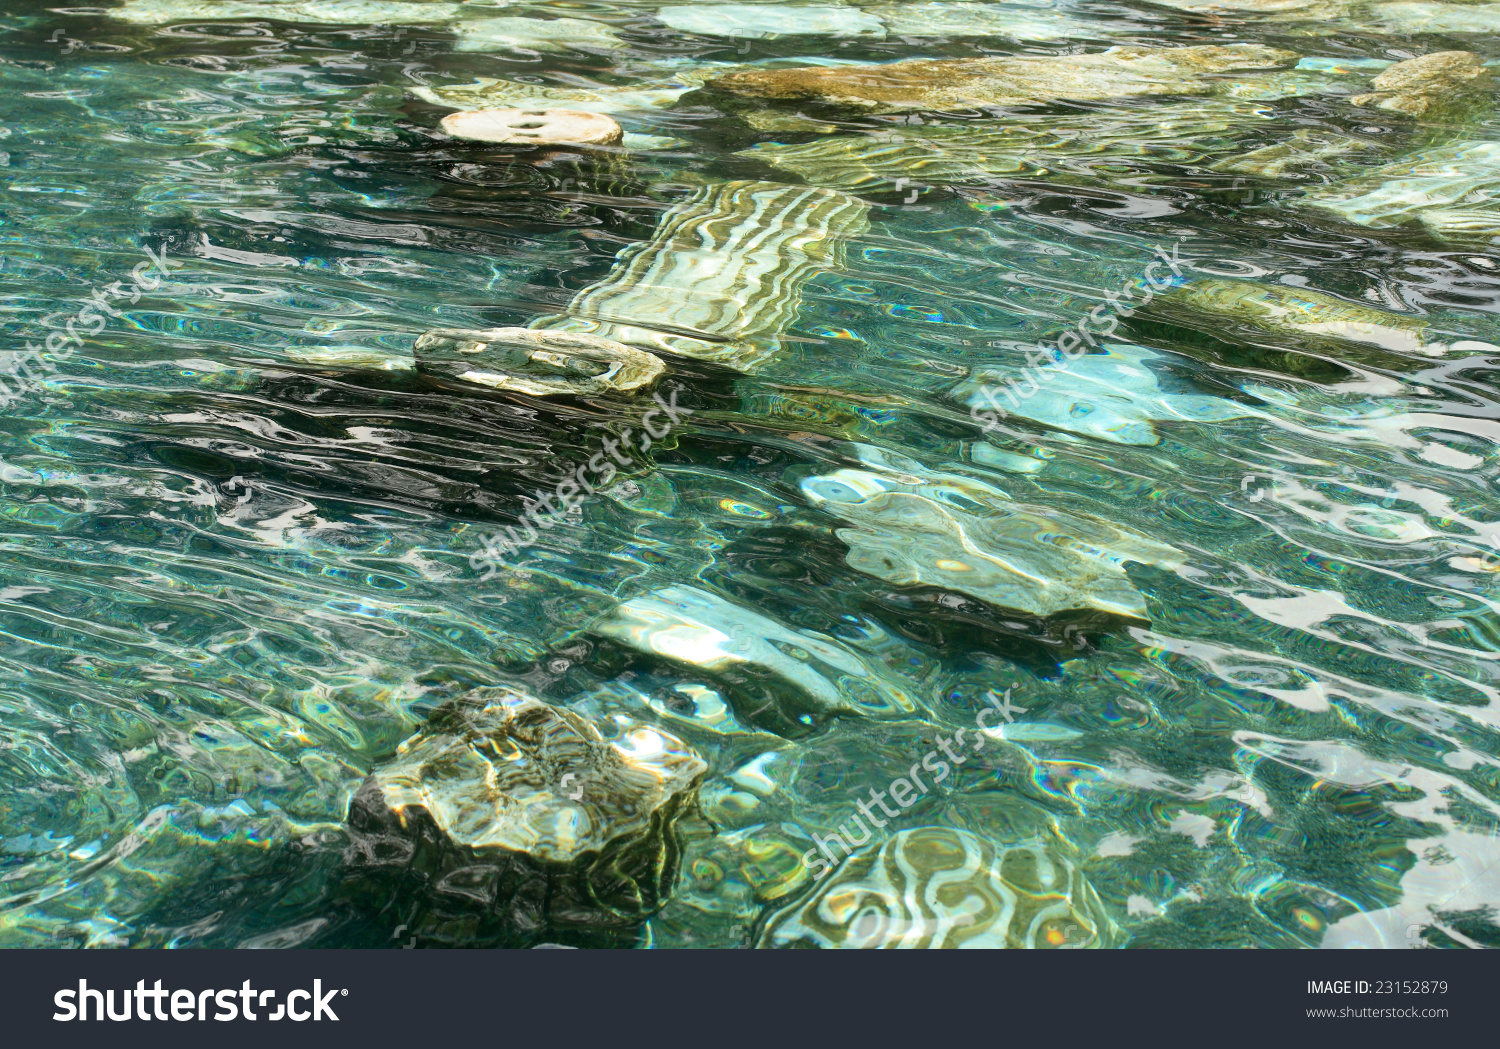 Cleopatra Pool With Mineral Water, Hierapolis, Turkey. Stock Photo.